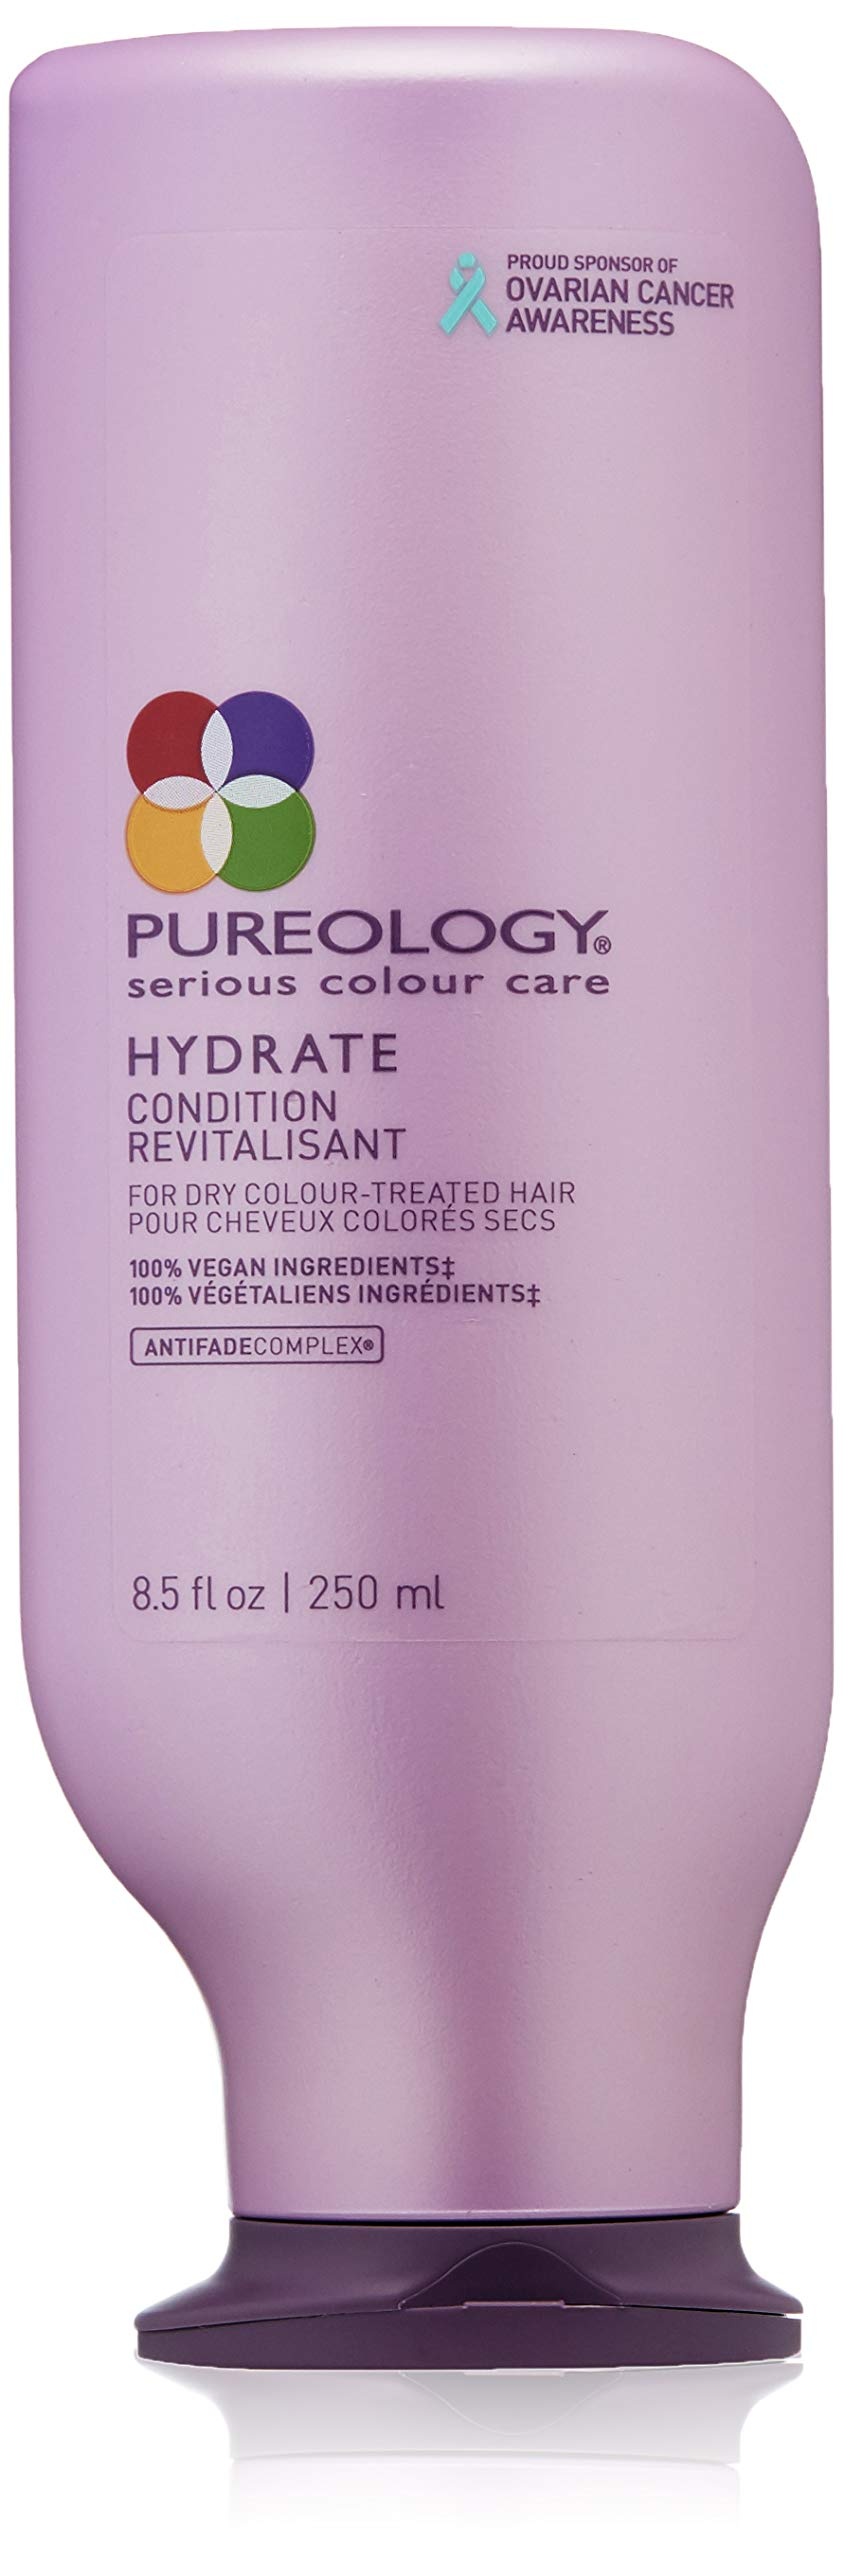 Pureology Hydrate Conditioner 8.5 Fl Oz by Pureology (Image #1)